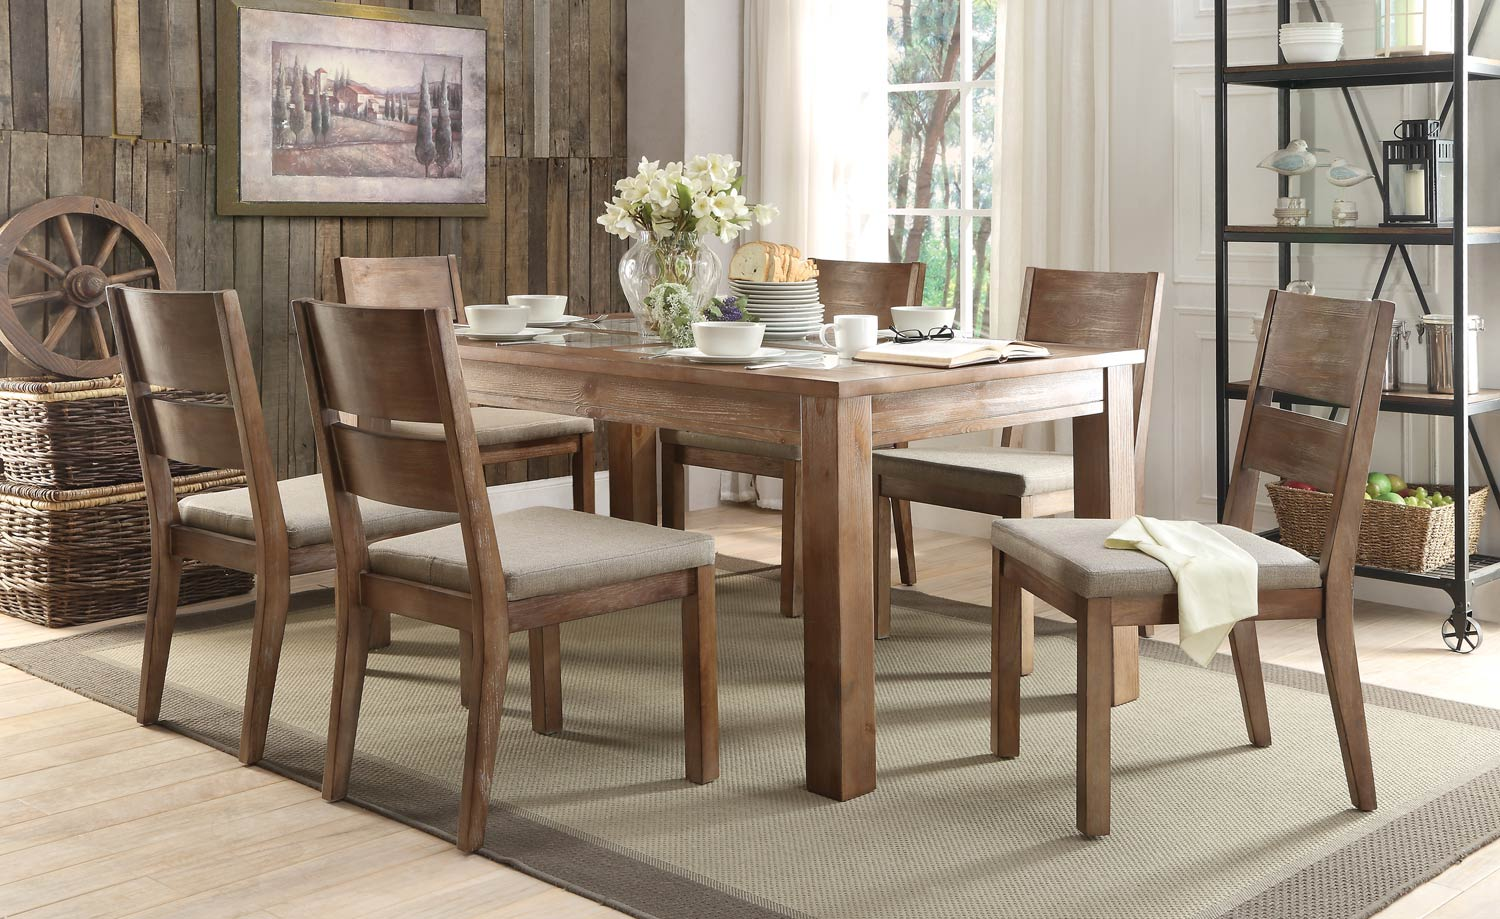 Homelegance Marion Dining Set - Tile Inset - Natural Weathered